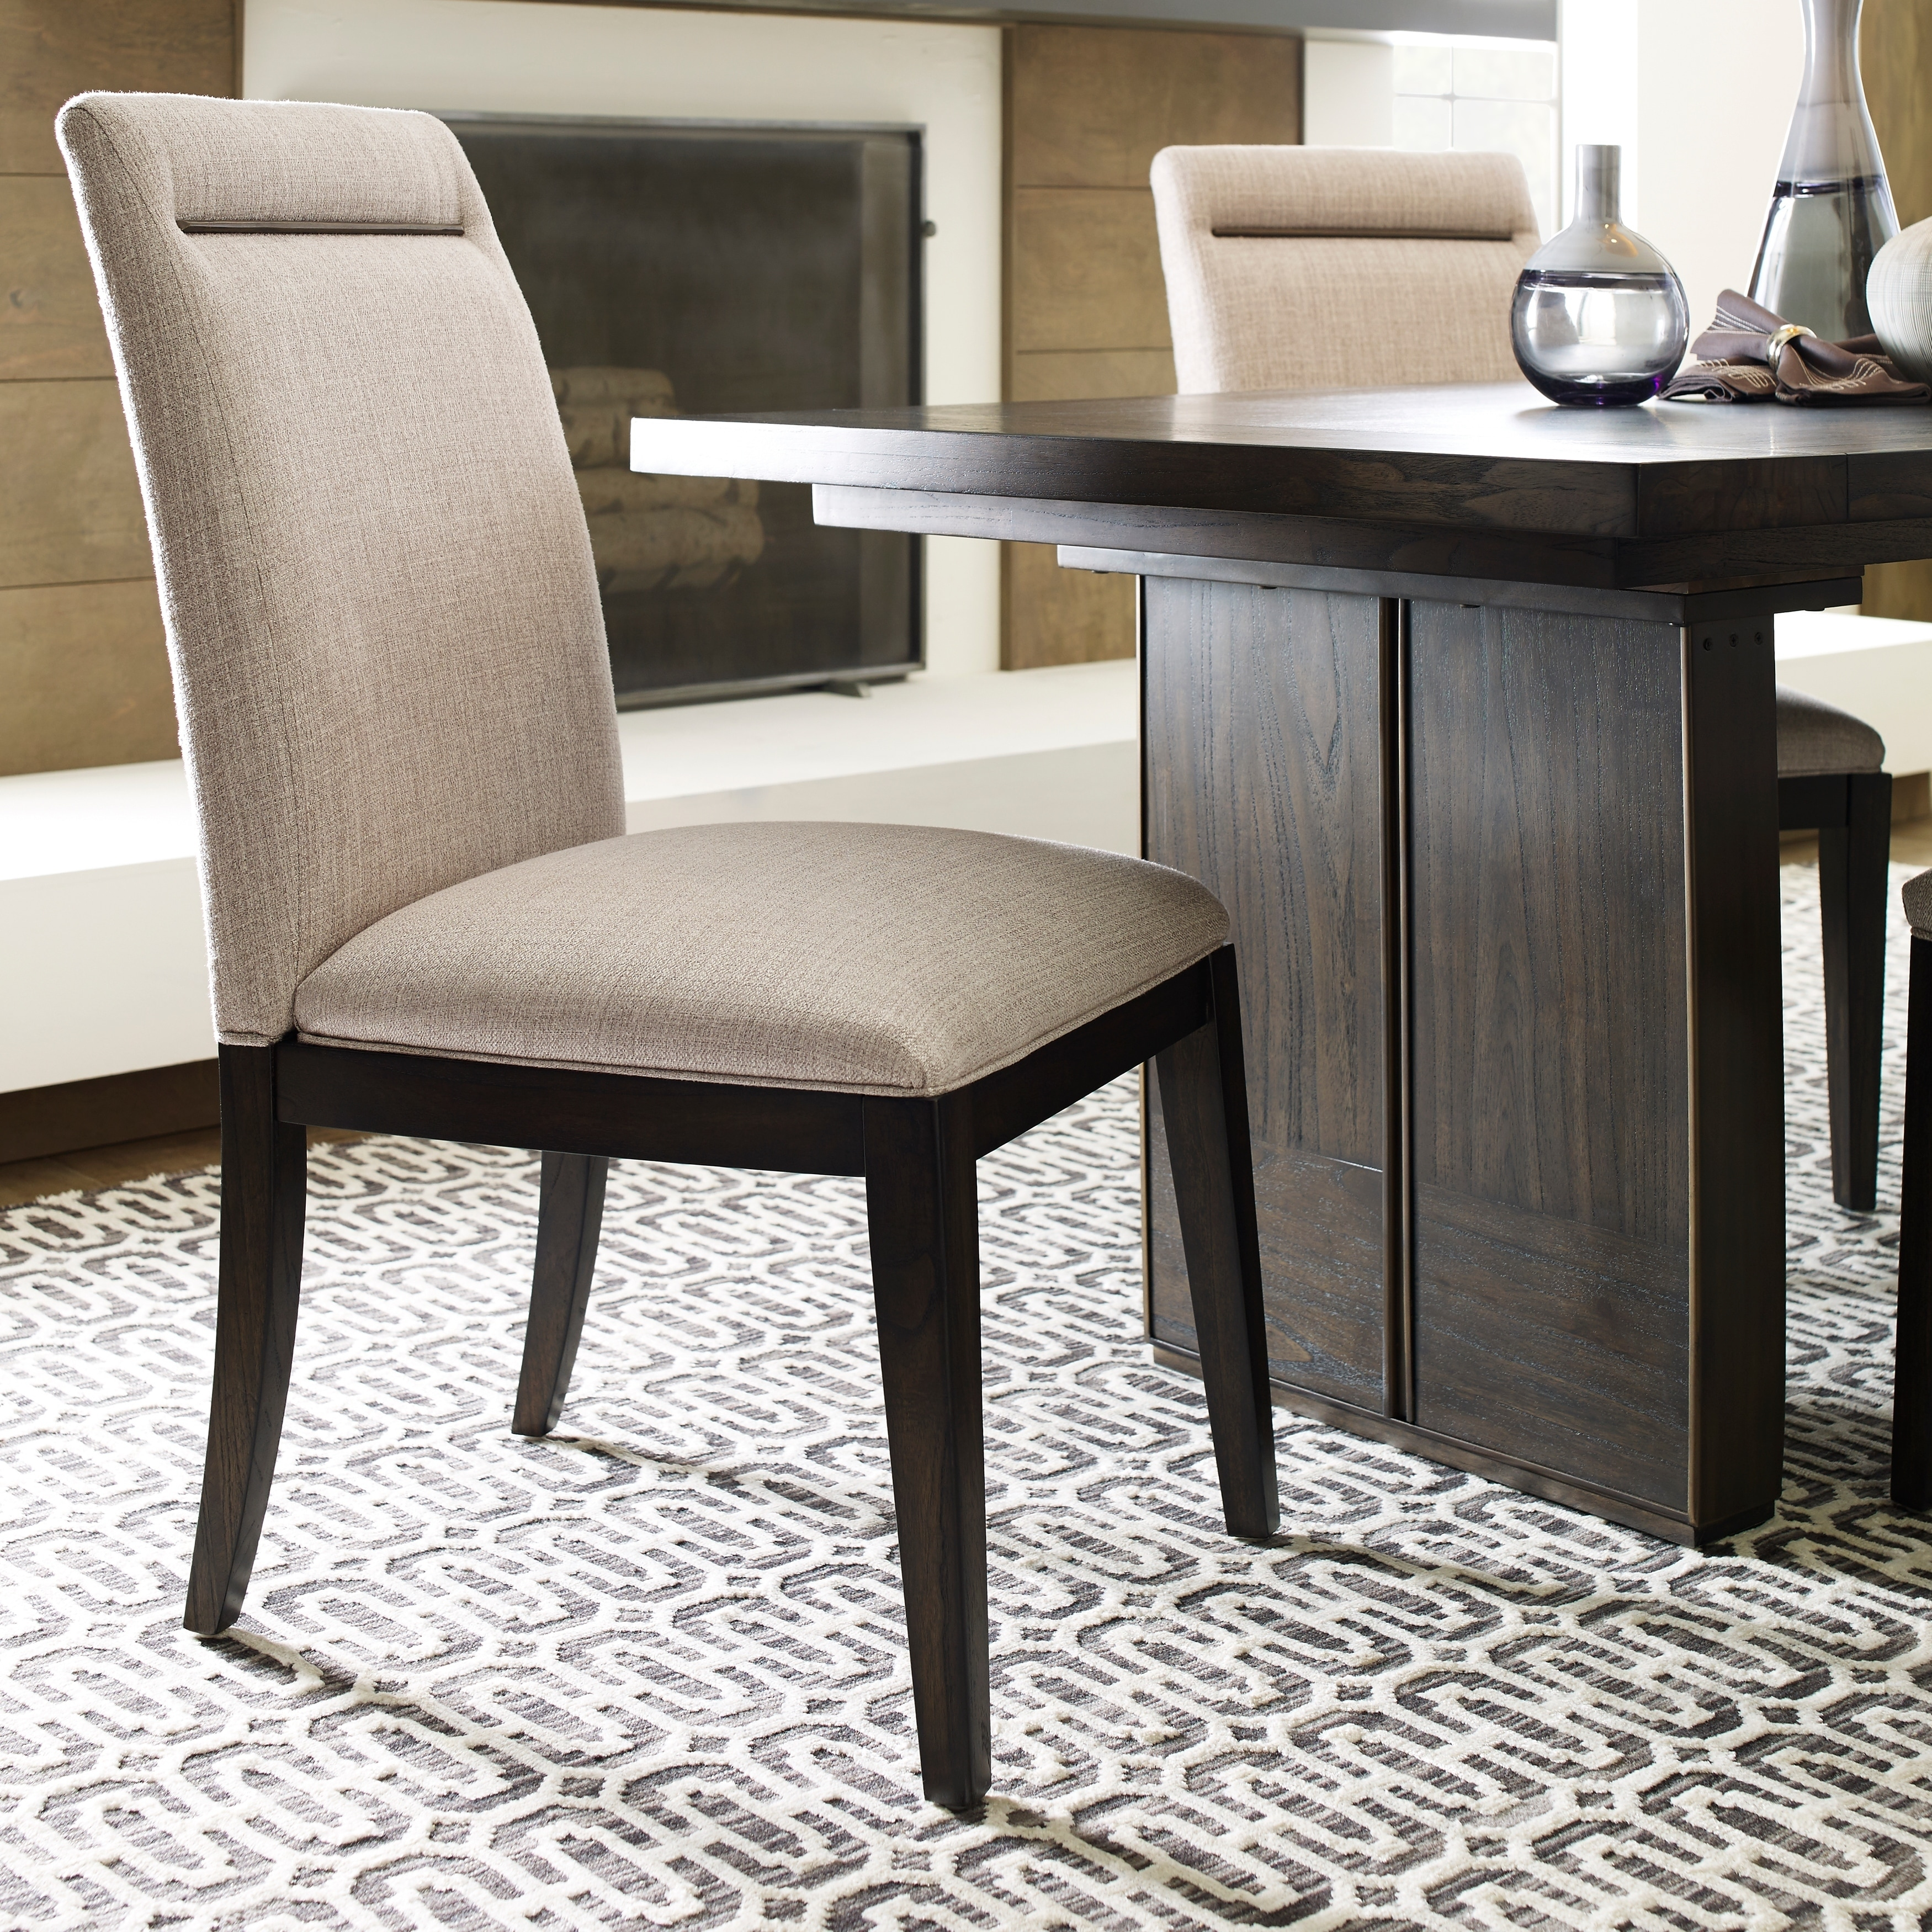 MacArthur Terrace Contemporary Upholstered Dining Side Chair